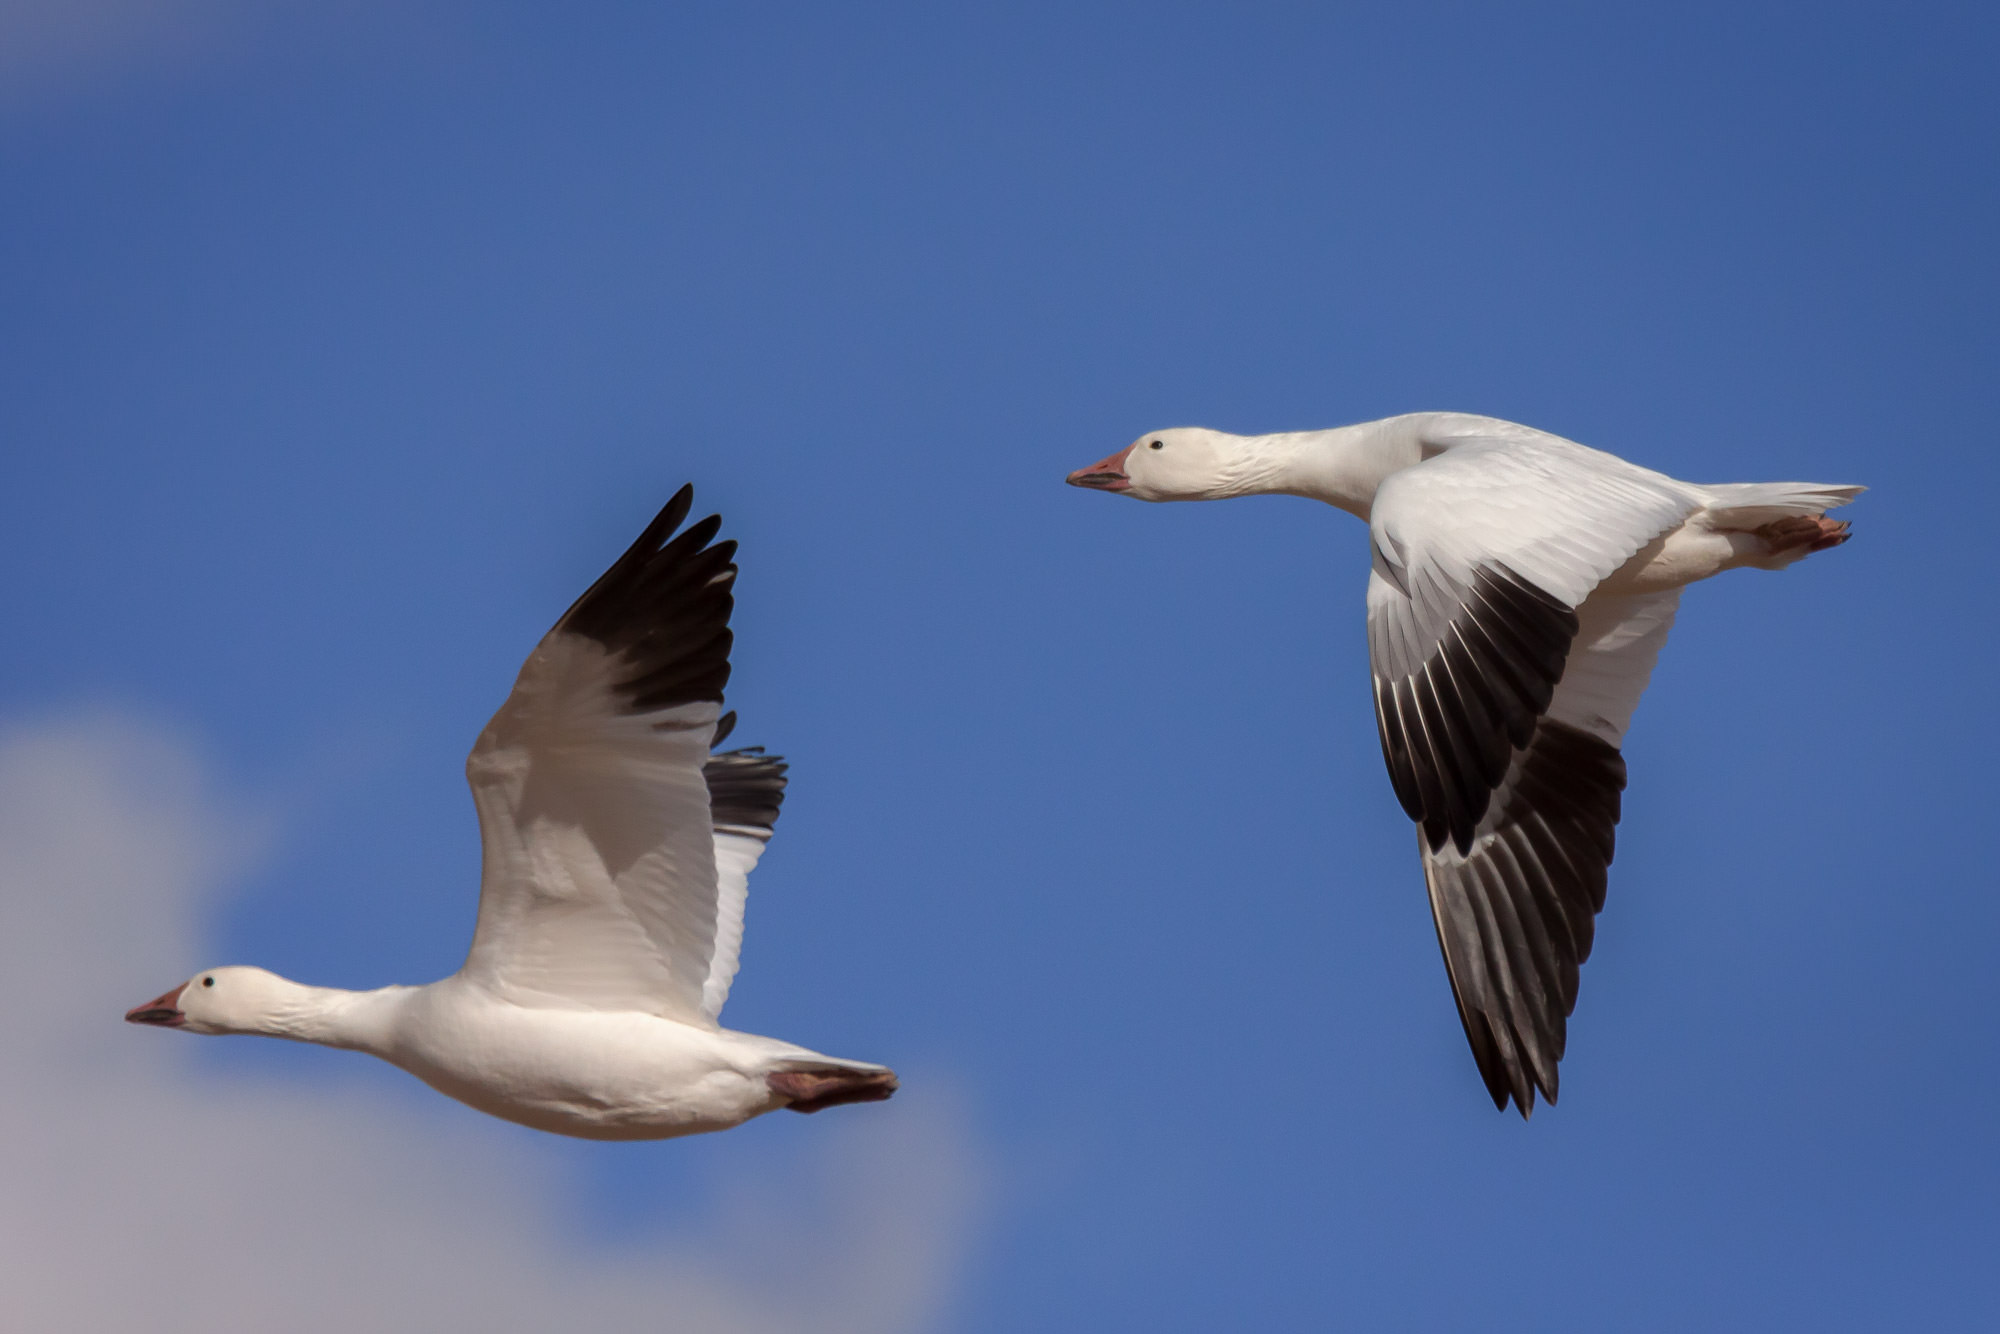 Snow Geese Fine Art Photography A Limited Edition photograph of a pair of Snow Geese with wings both up and down at Bosque del...